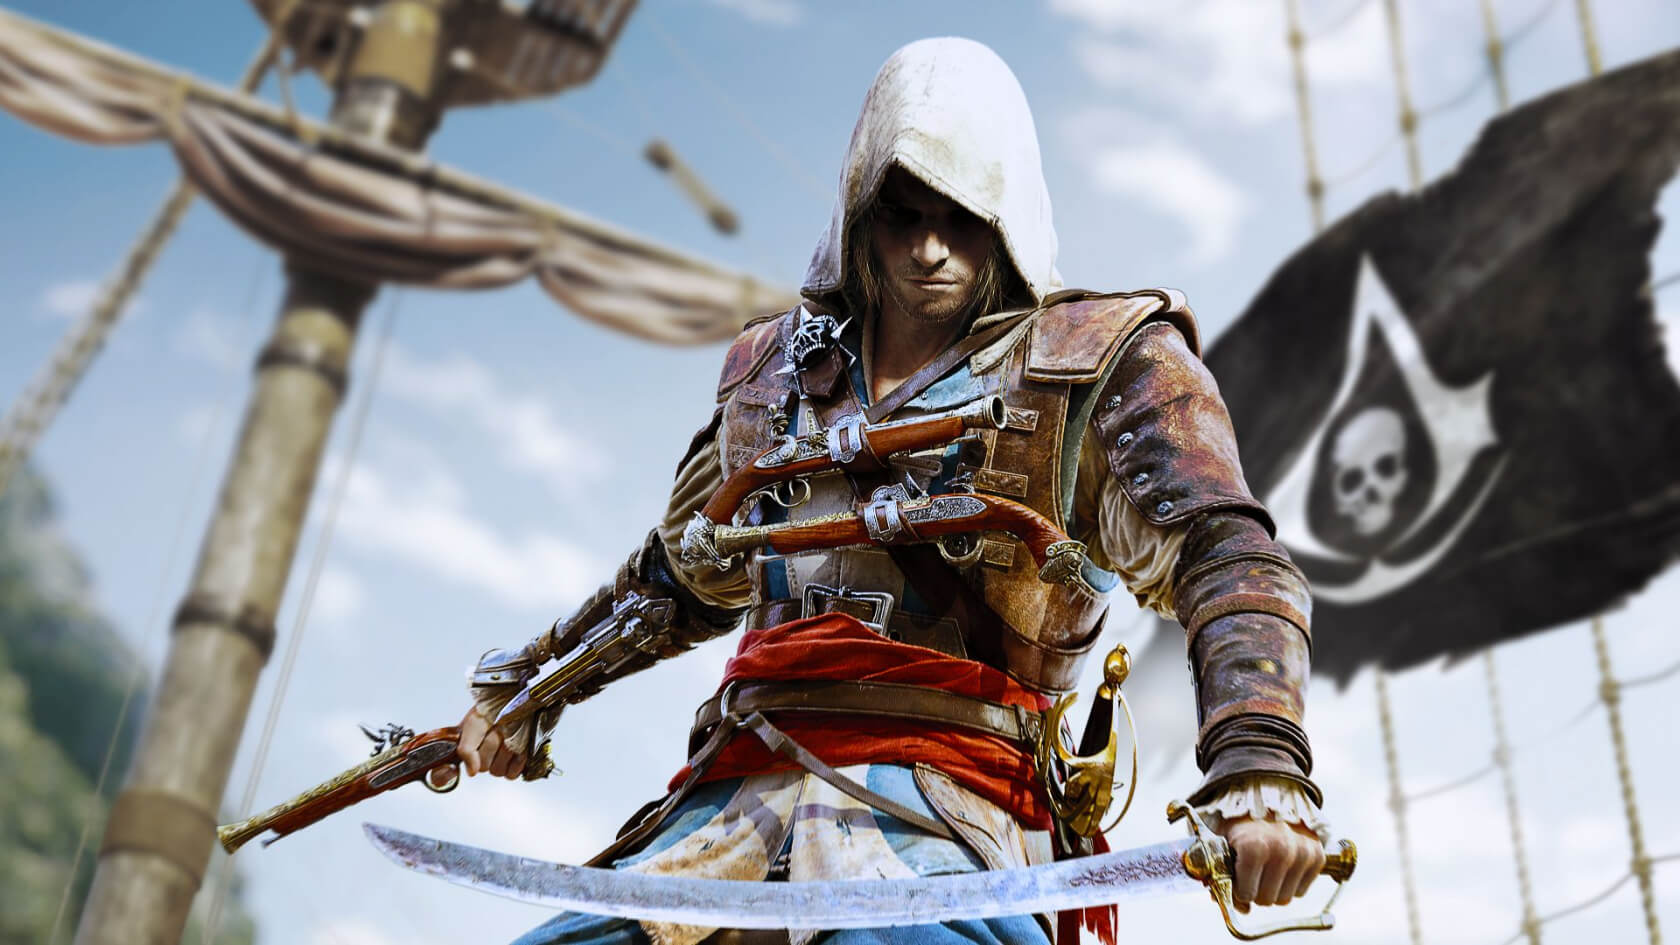 Get Assassin's Creed 4: Black Flag and World in Conflict free from Ubisoft this month